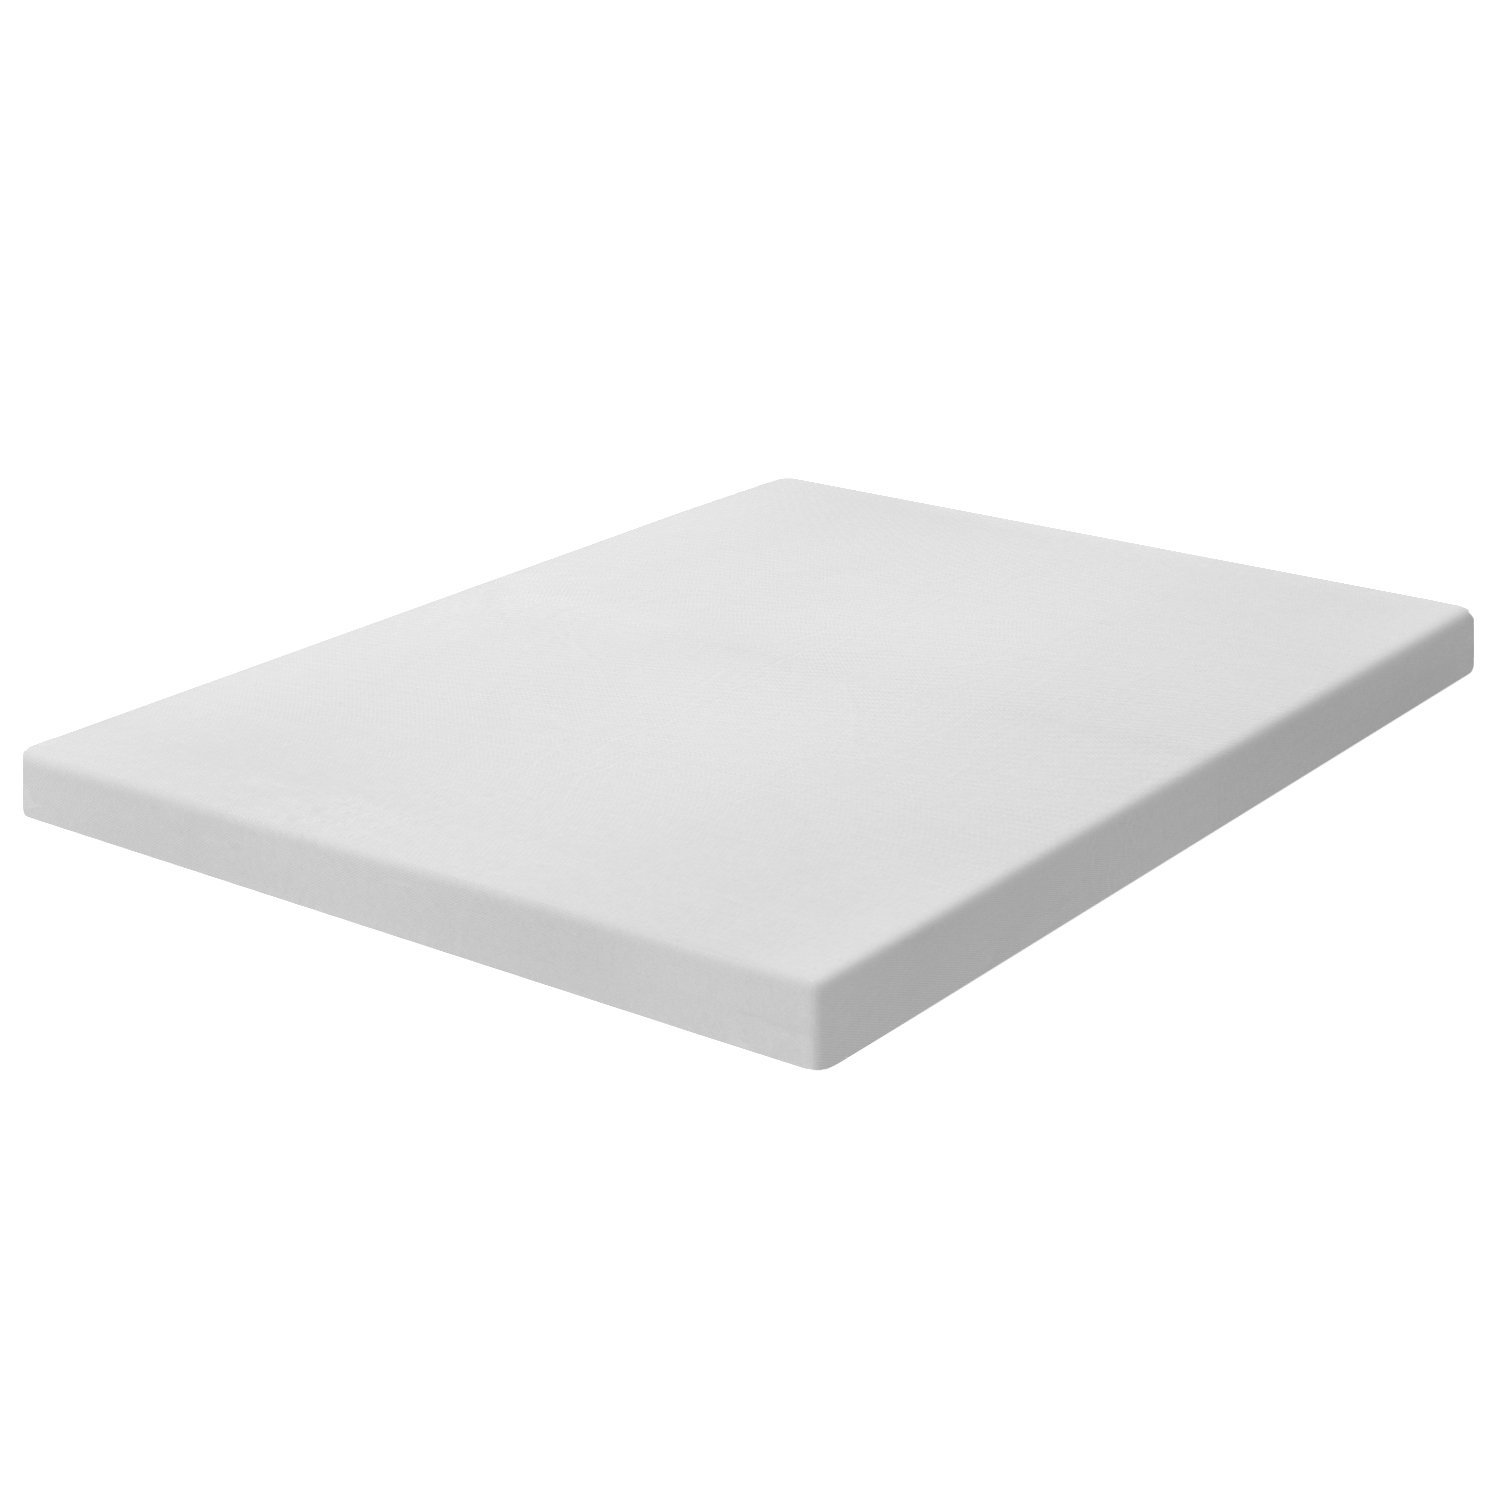 Best foam mattress find comfortable latex foam mattress for Best foam mattress